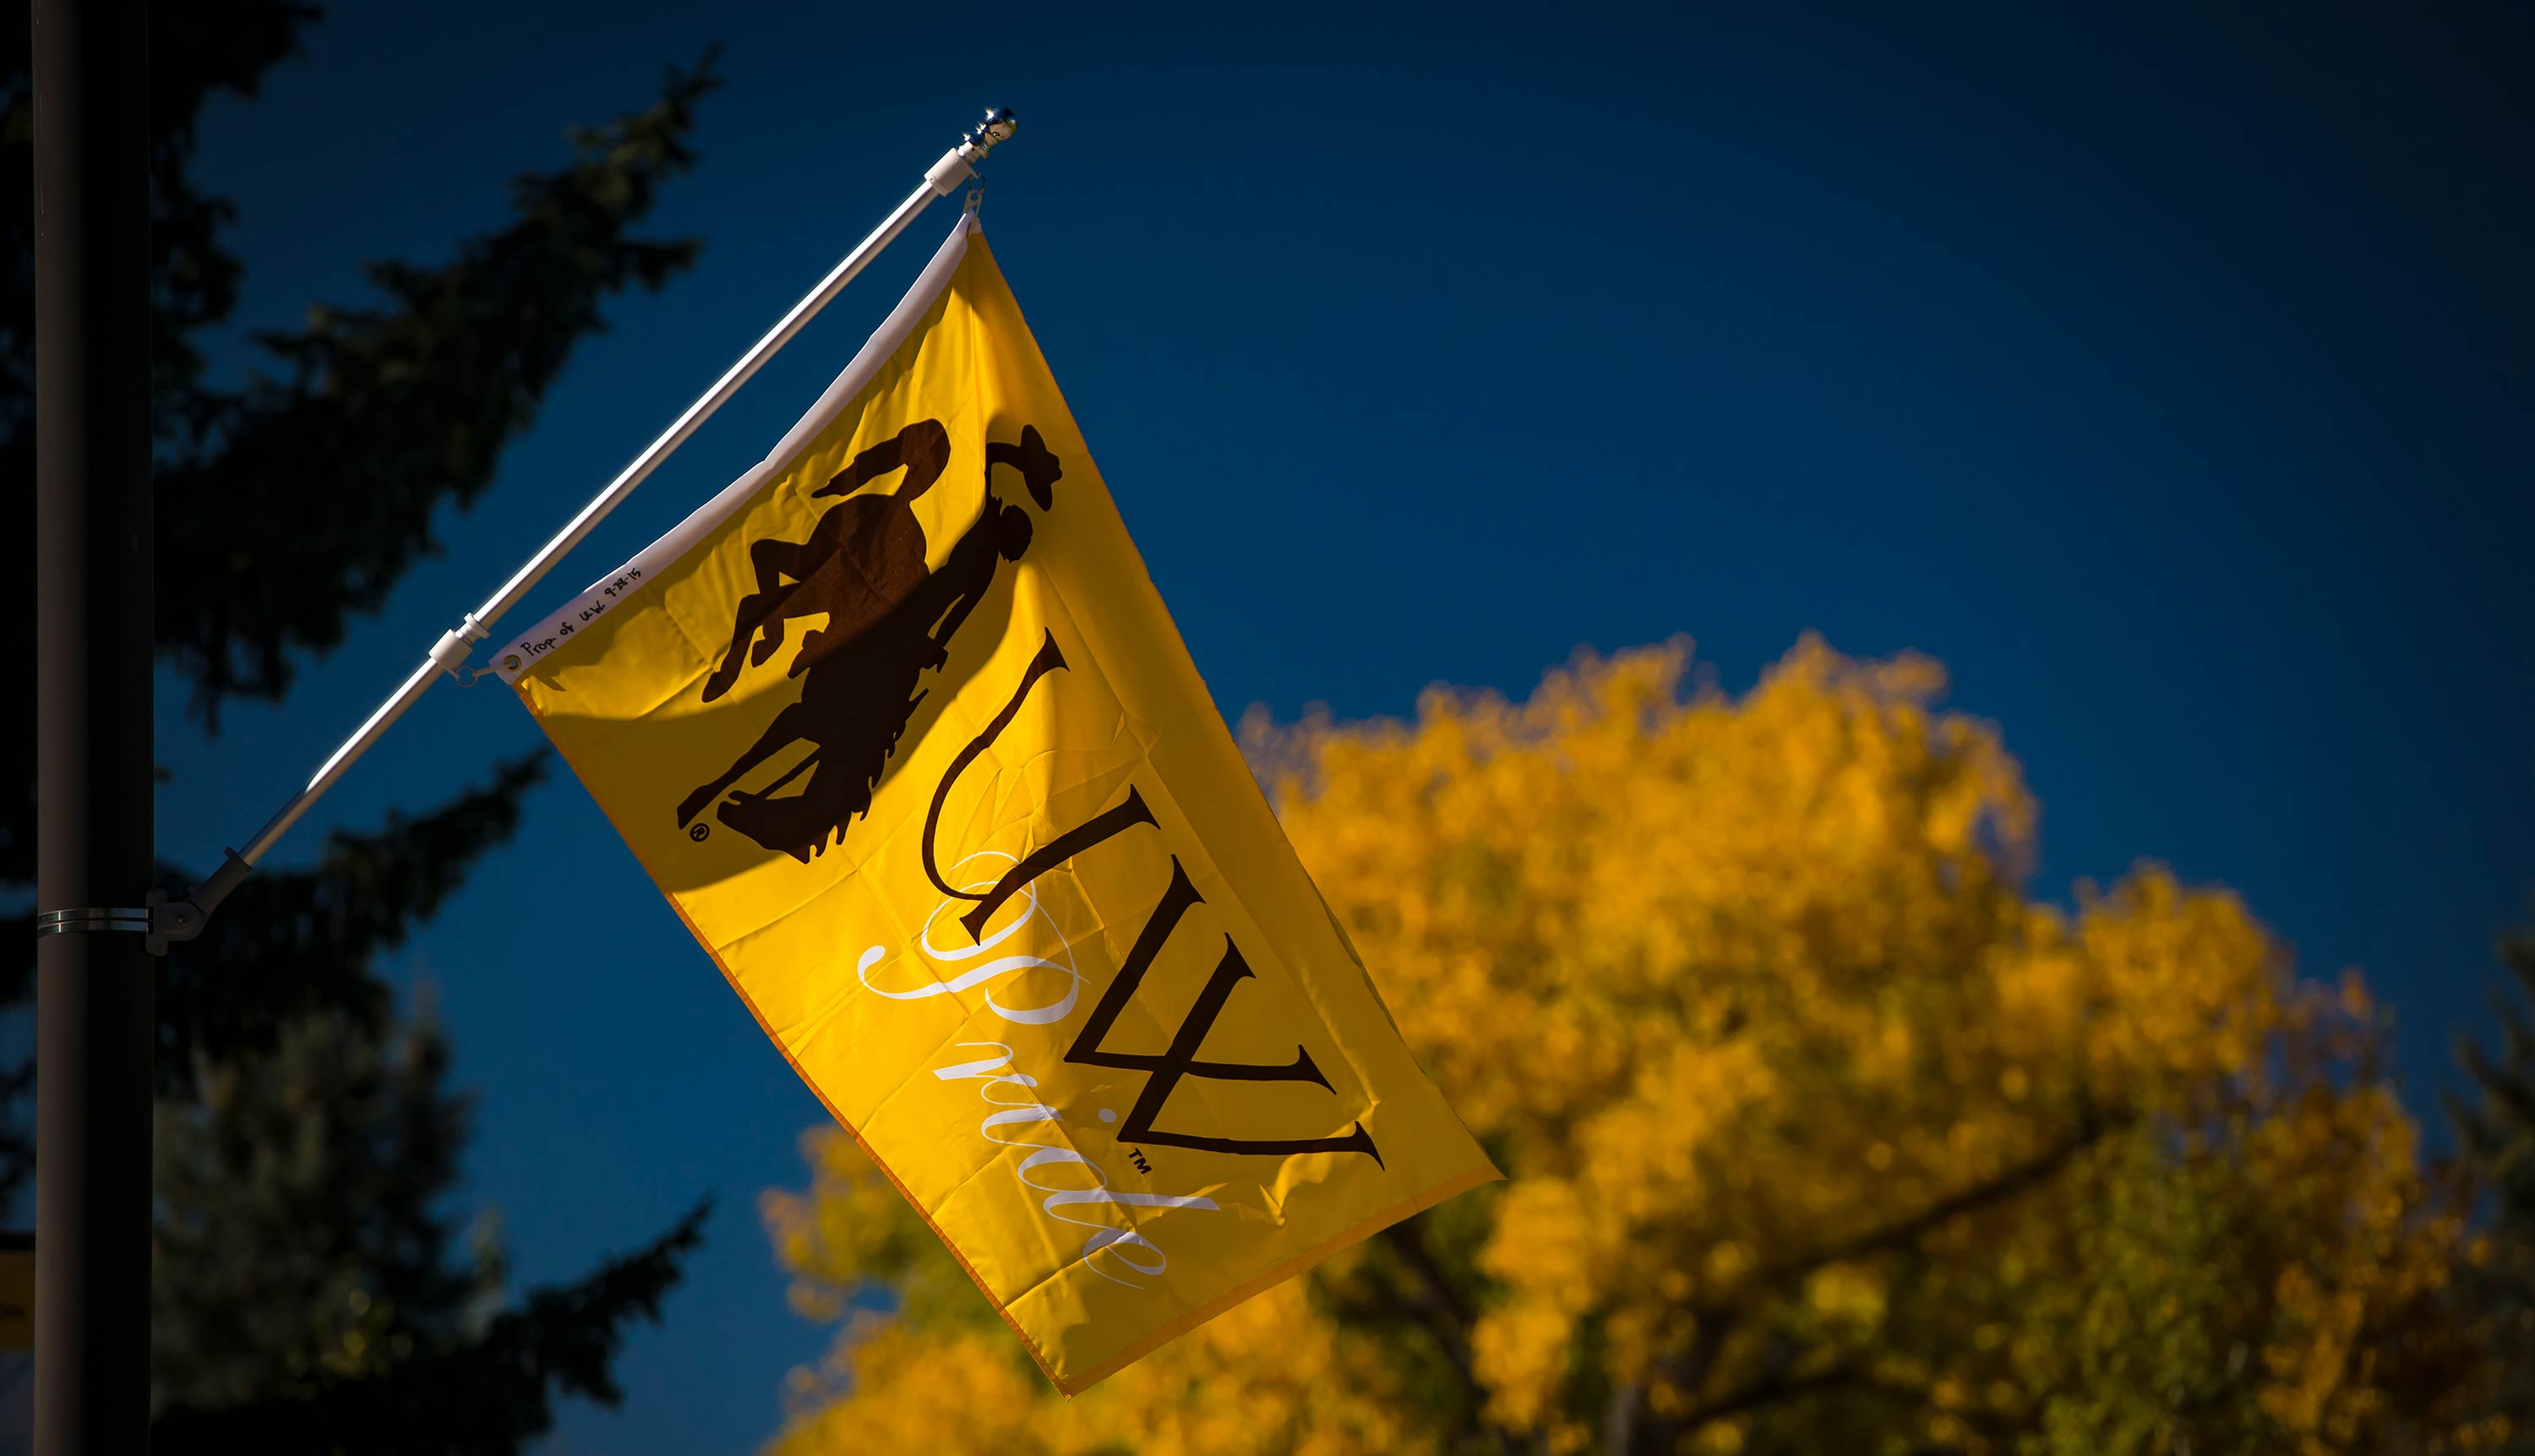 UW flag flying